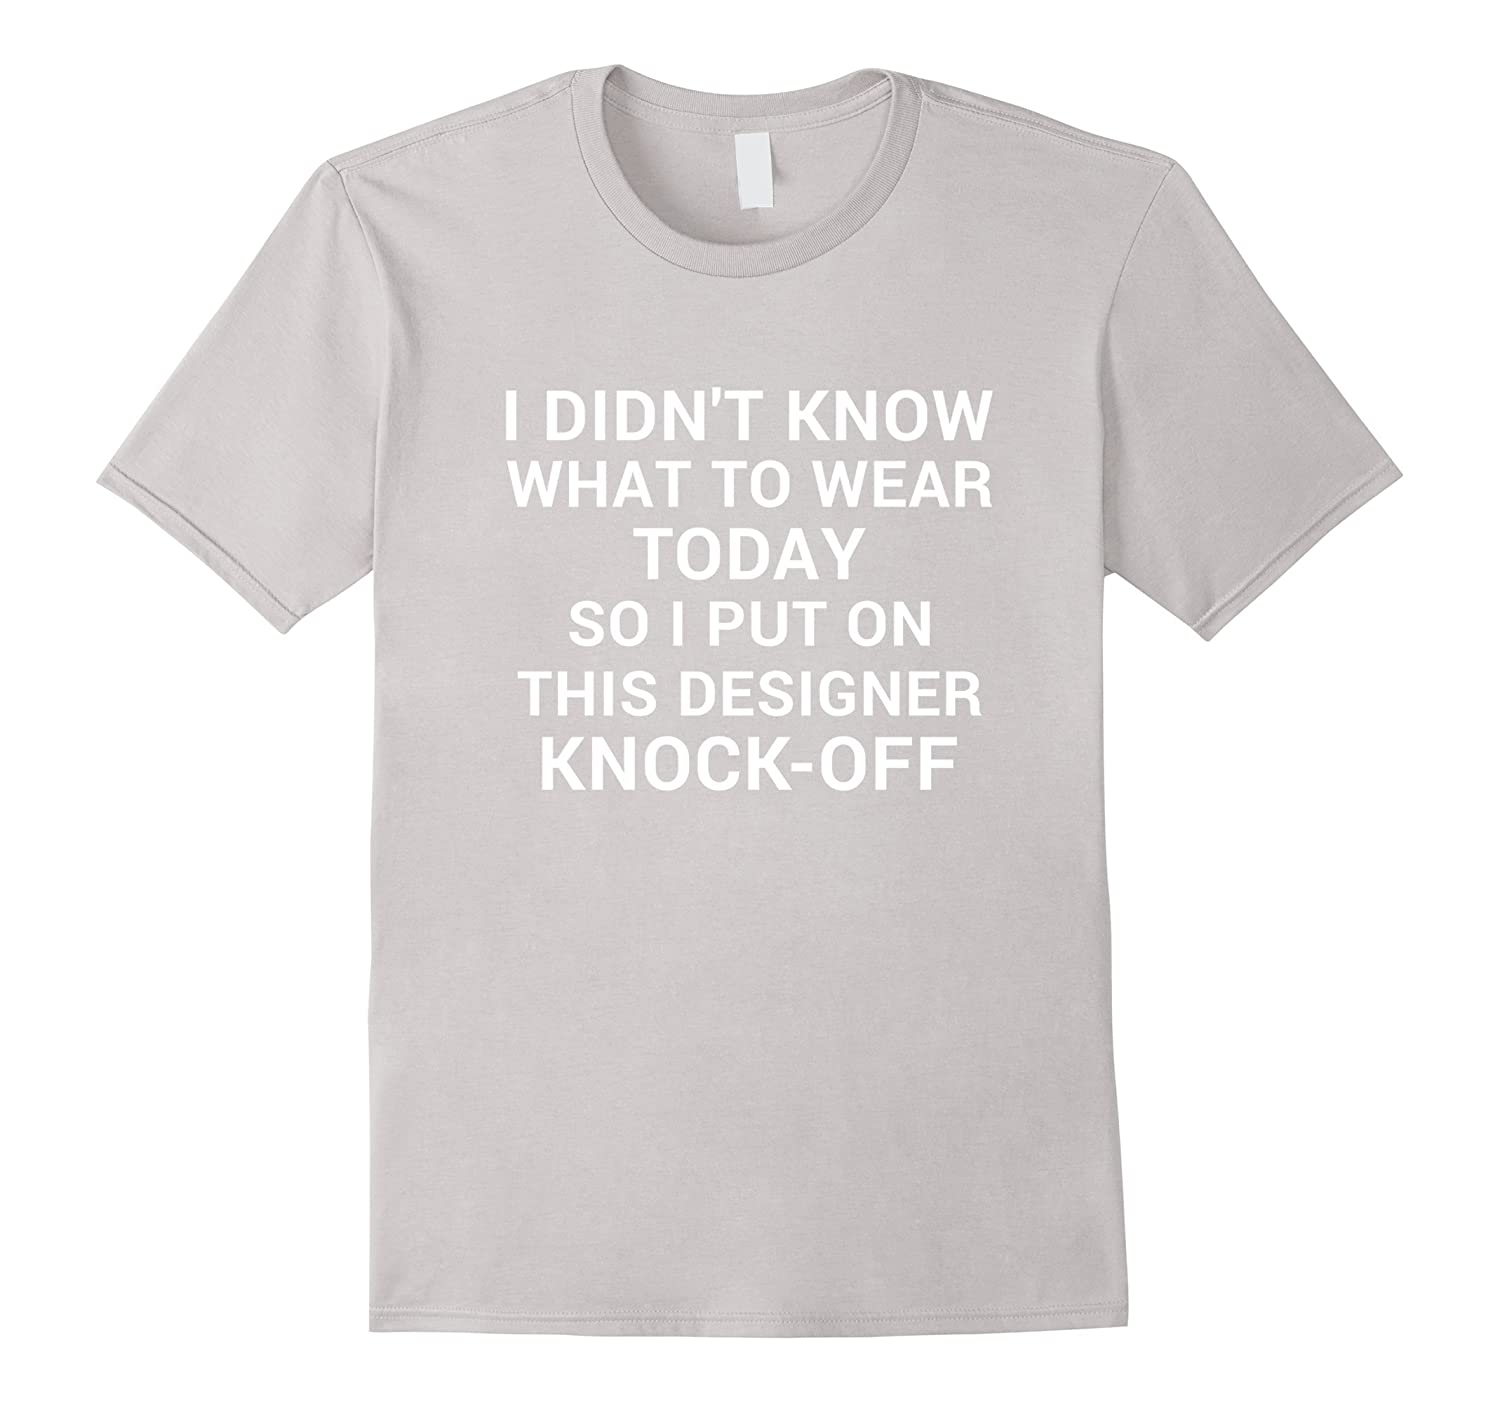 Knock Off Designer Clothes   Amazon Com Didn T Know What To Wear So This Designer Knock Off T